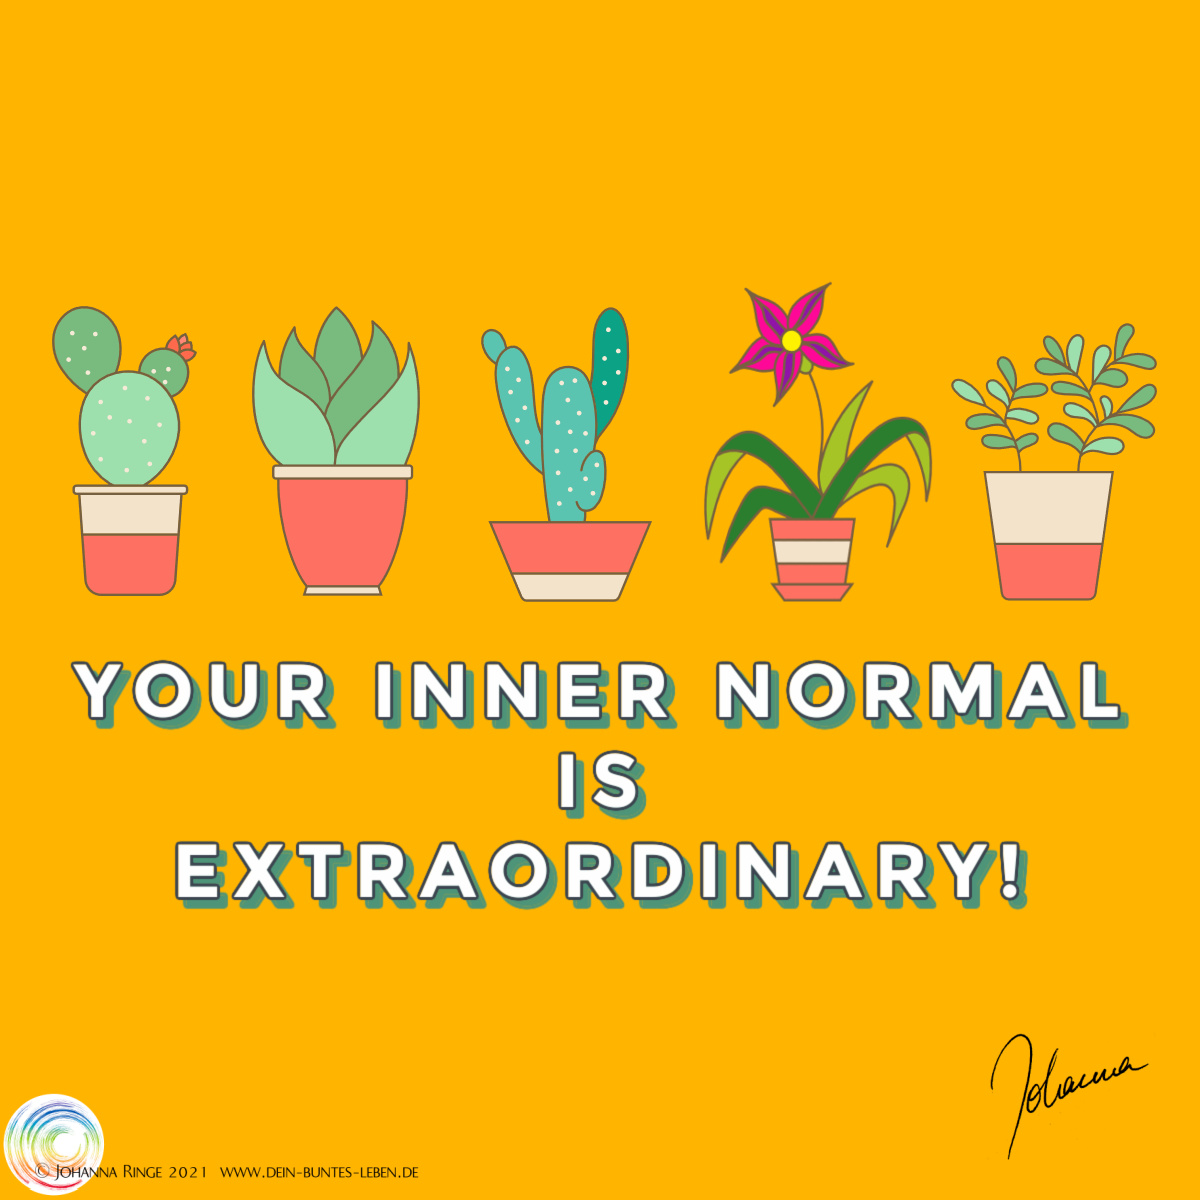 Your inner normal is extraordinary! (Text under drawings of five very different plants) ©Johanna Ringe 2021 www.johannaringe.com